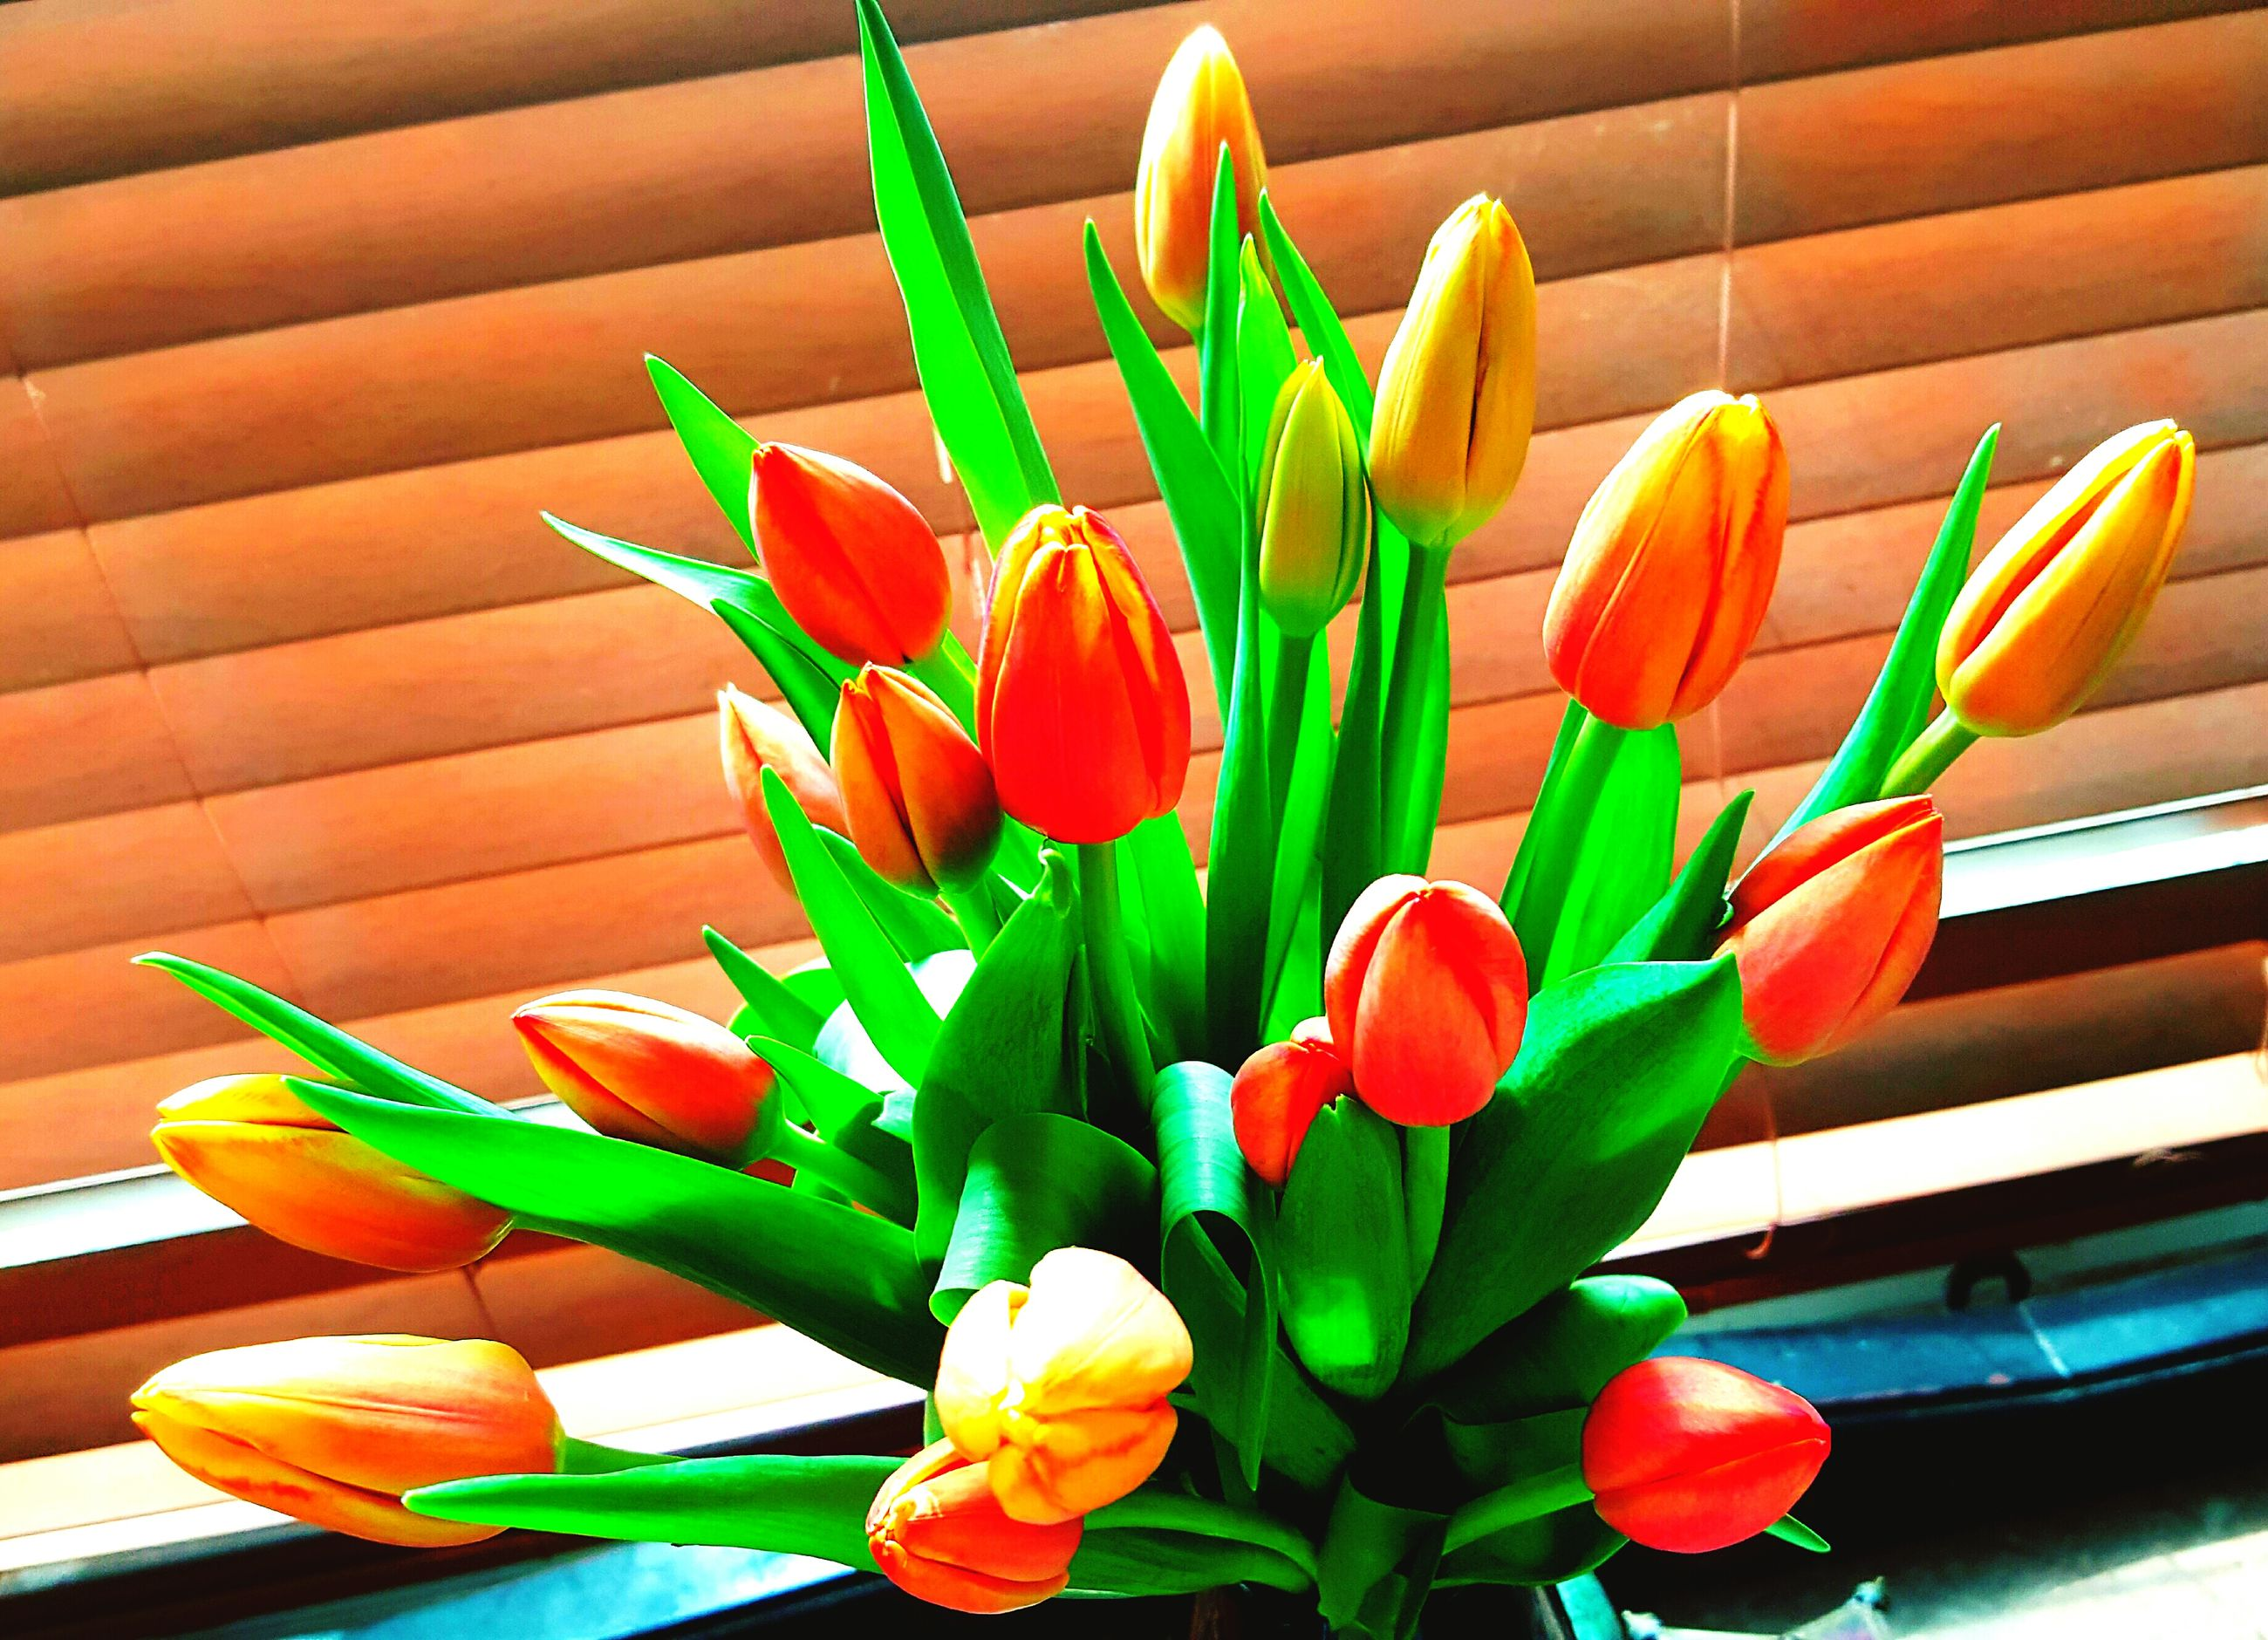 flower, freshness, petal, yellow, fragility, indoors, potted plant, flower head, plant, vase, leaf, growth, flower pot, multi colored, tulip, table, close-up, flower arrangement, stem, wall - building feature